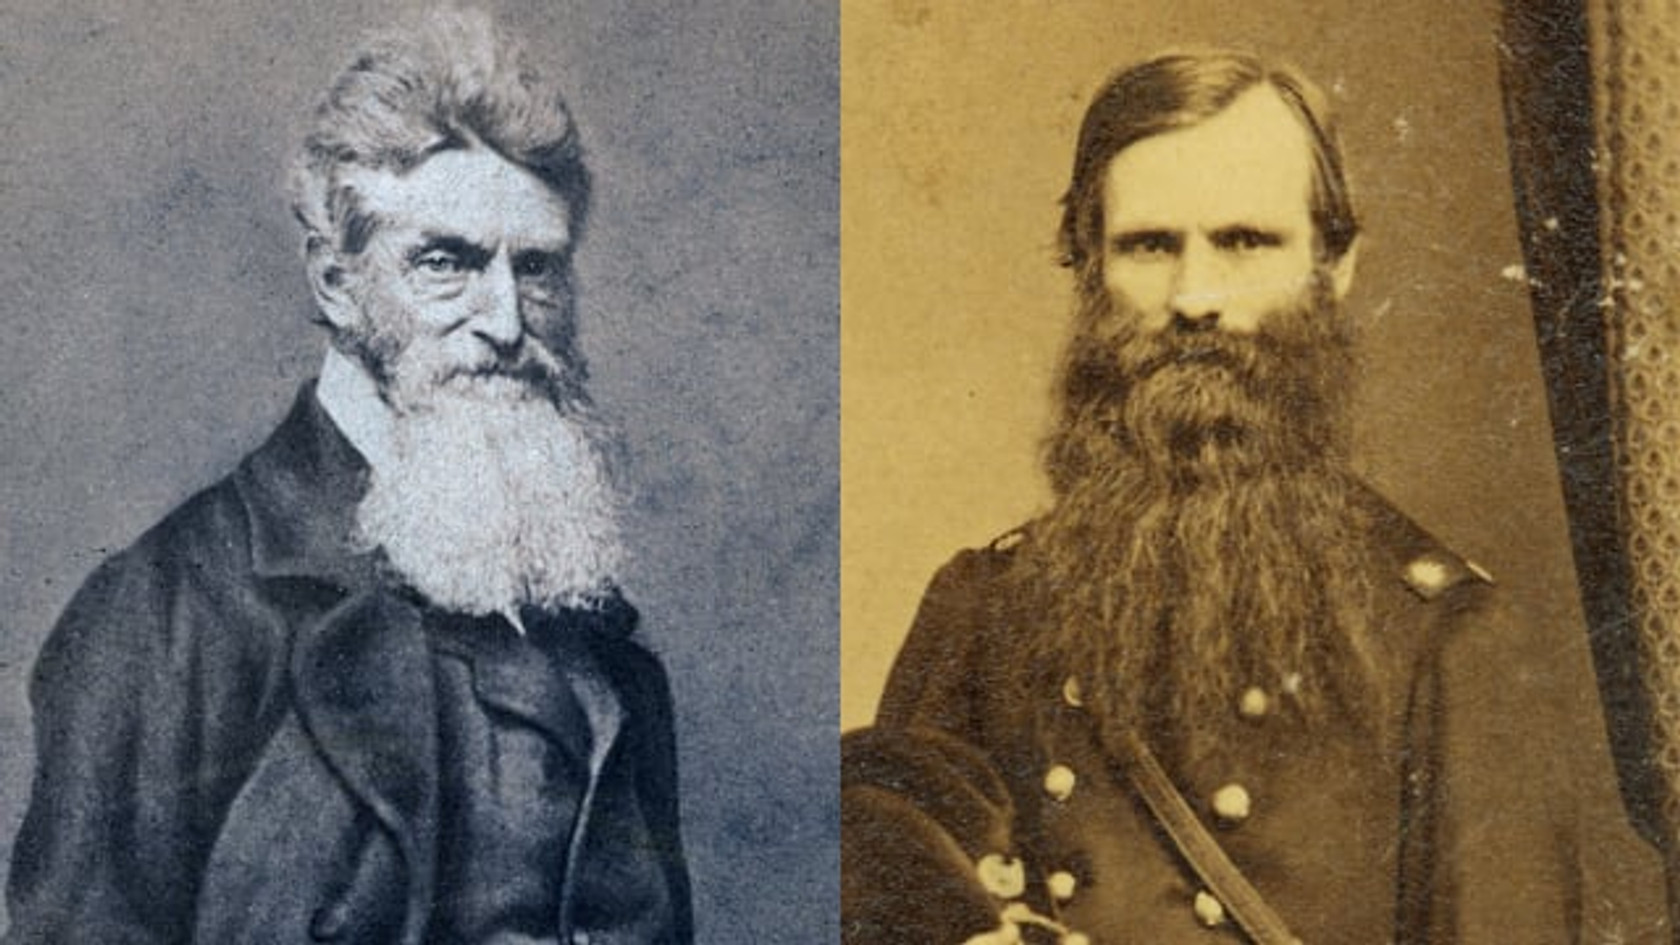 Finding John Brown: The Partnership